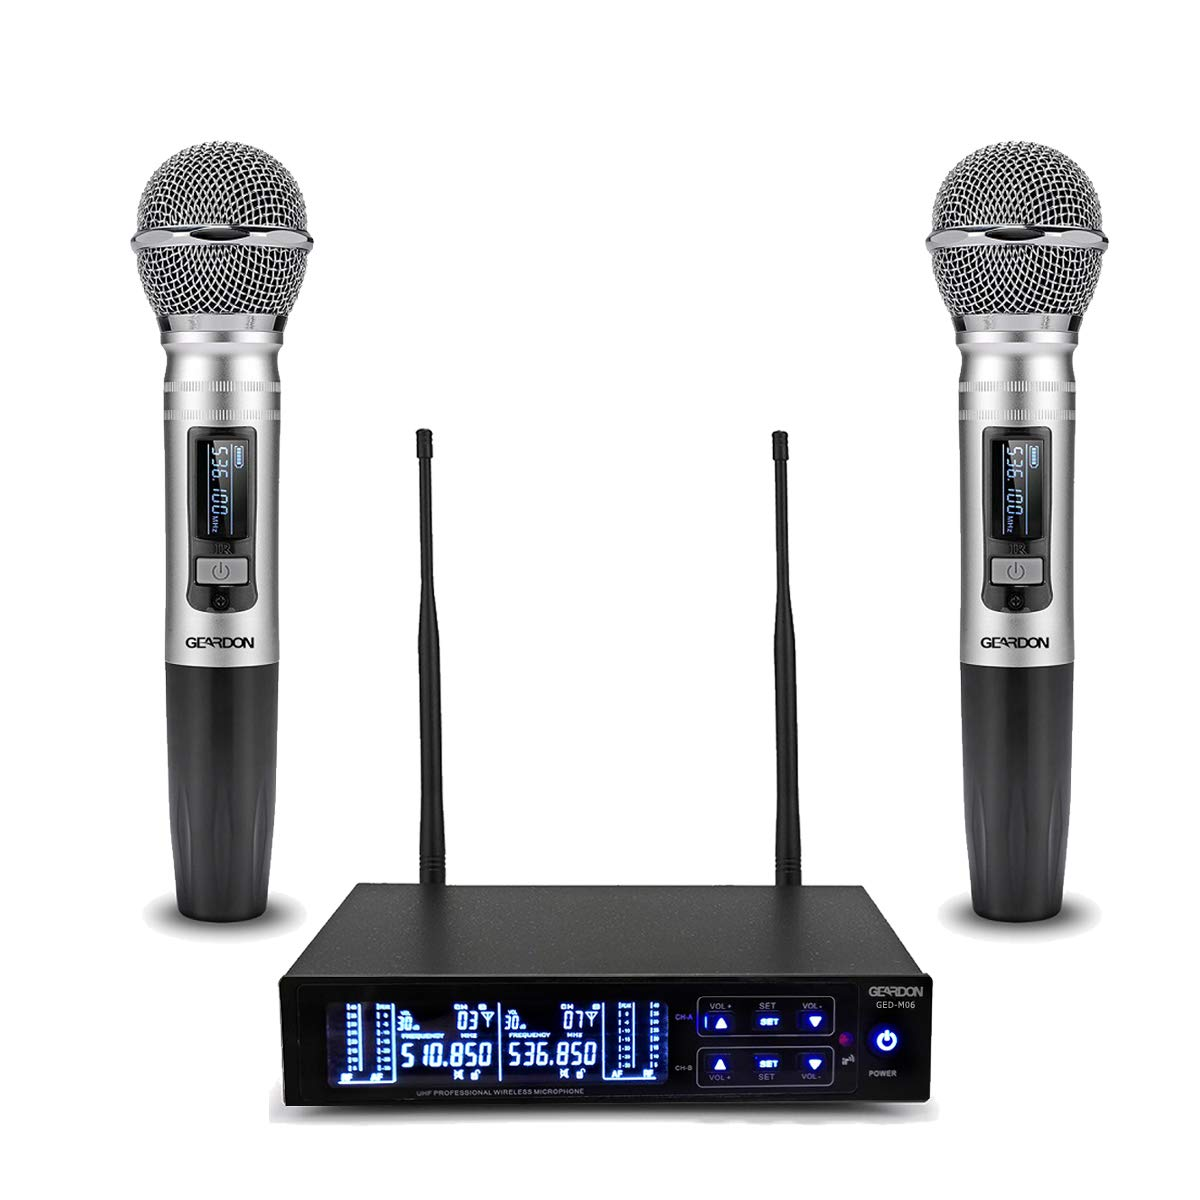 GEARDON Dual Wireless Microphone System, 200 Channel UHF Metal Cordless Handheld Mic Set with 250ft Long Range Professional Performance for Presentation/Church/Karaoke by GEARDON (Image #1)